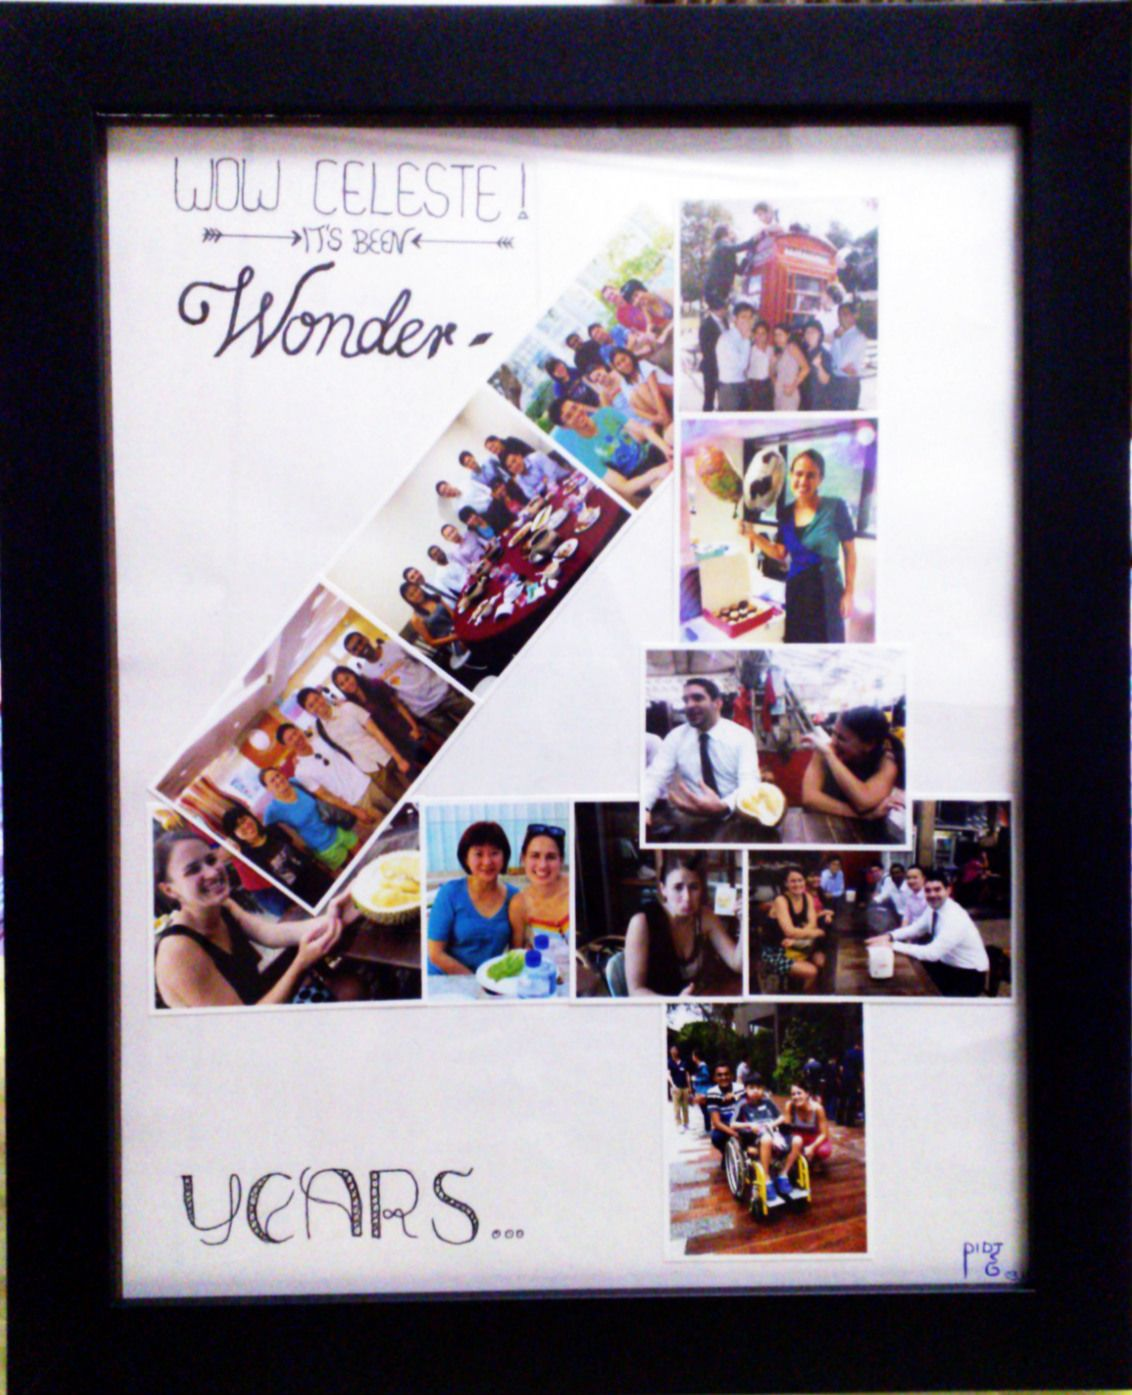 Diy 4 years anniversary photo collage my diy handcrafts What is the 4 year wedding anniversary gift